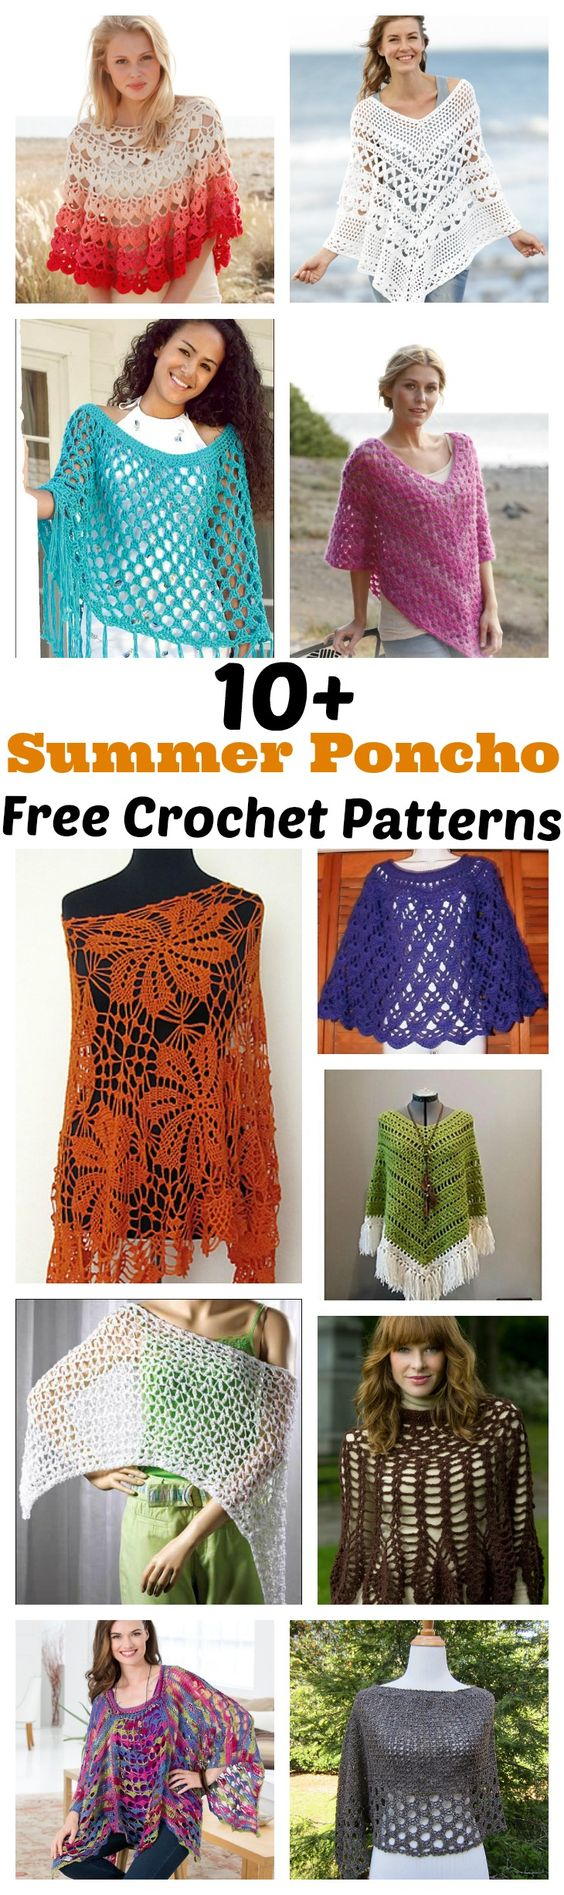 10 + Summer Poncho Free Crochet Patterns - Page 2 of 2 -: